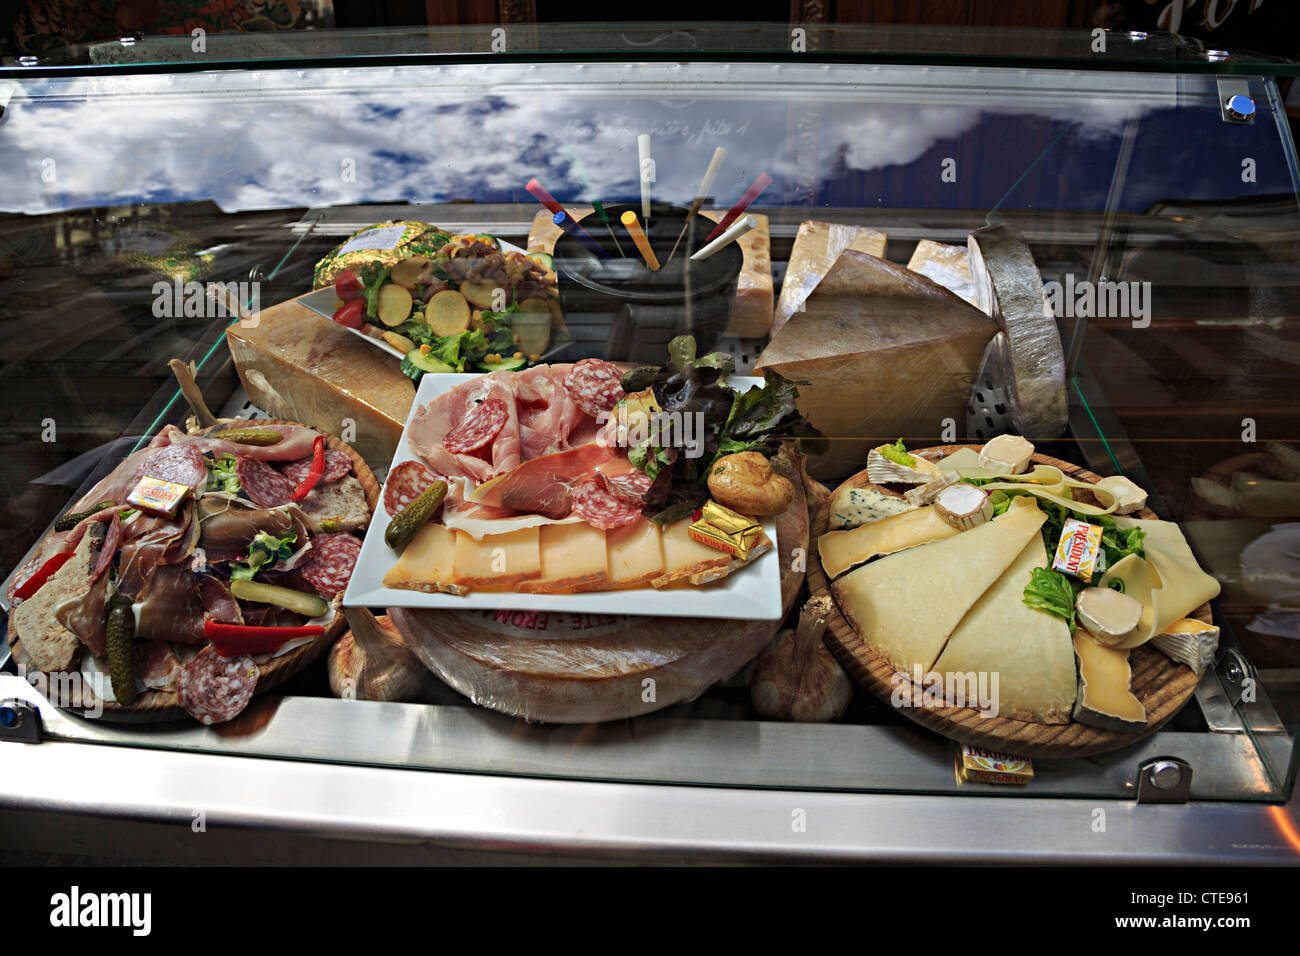 A display of meat and cheese platters in a chiller cabinet outside a Paris bistro. - Stock Image